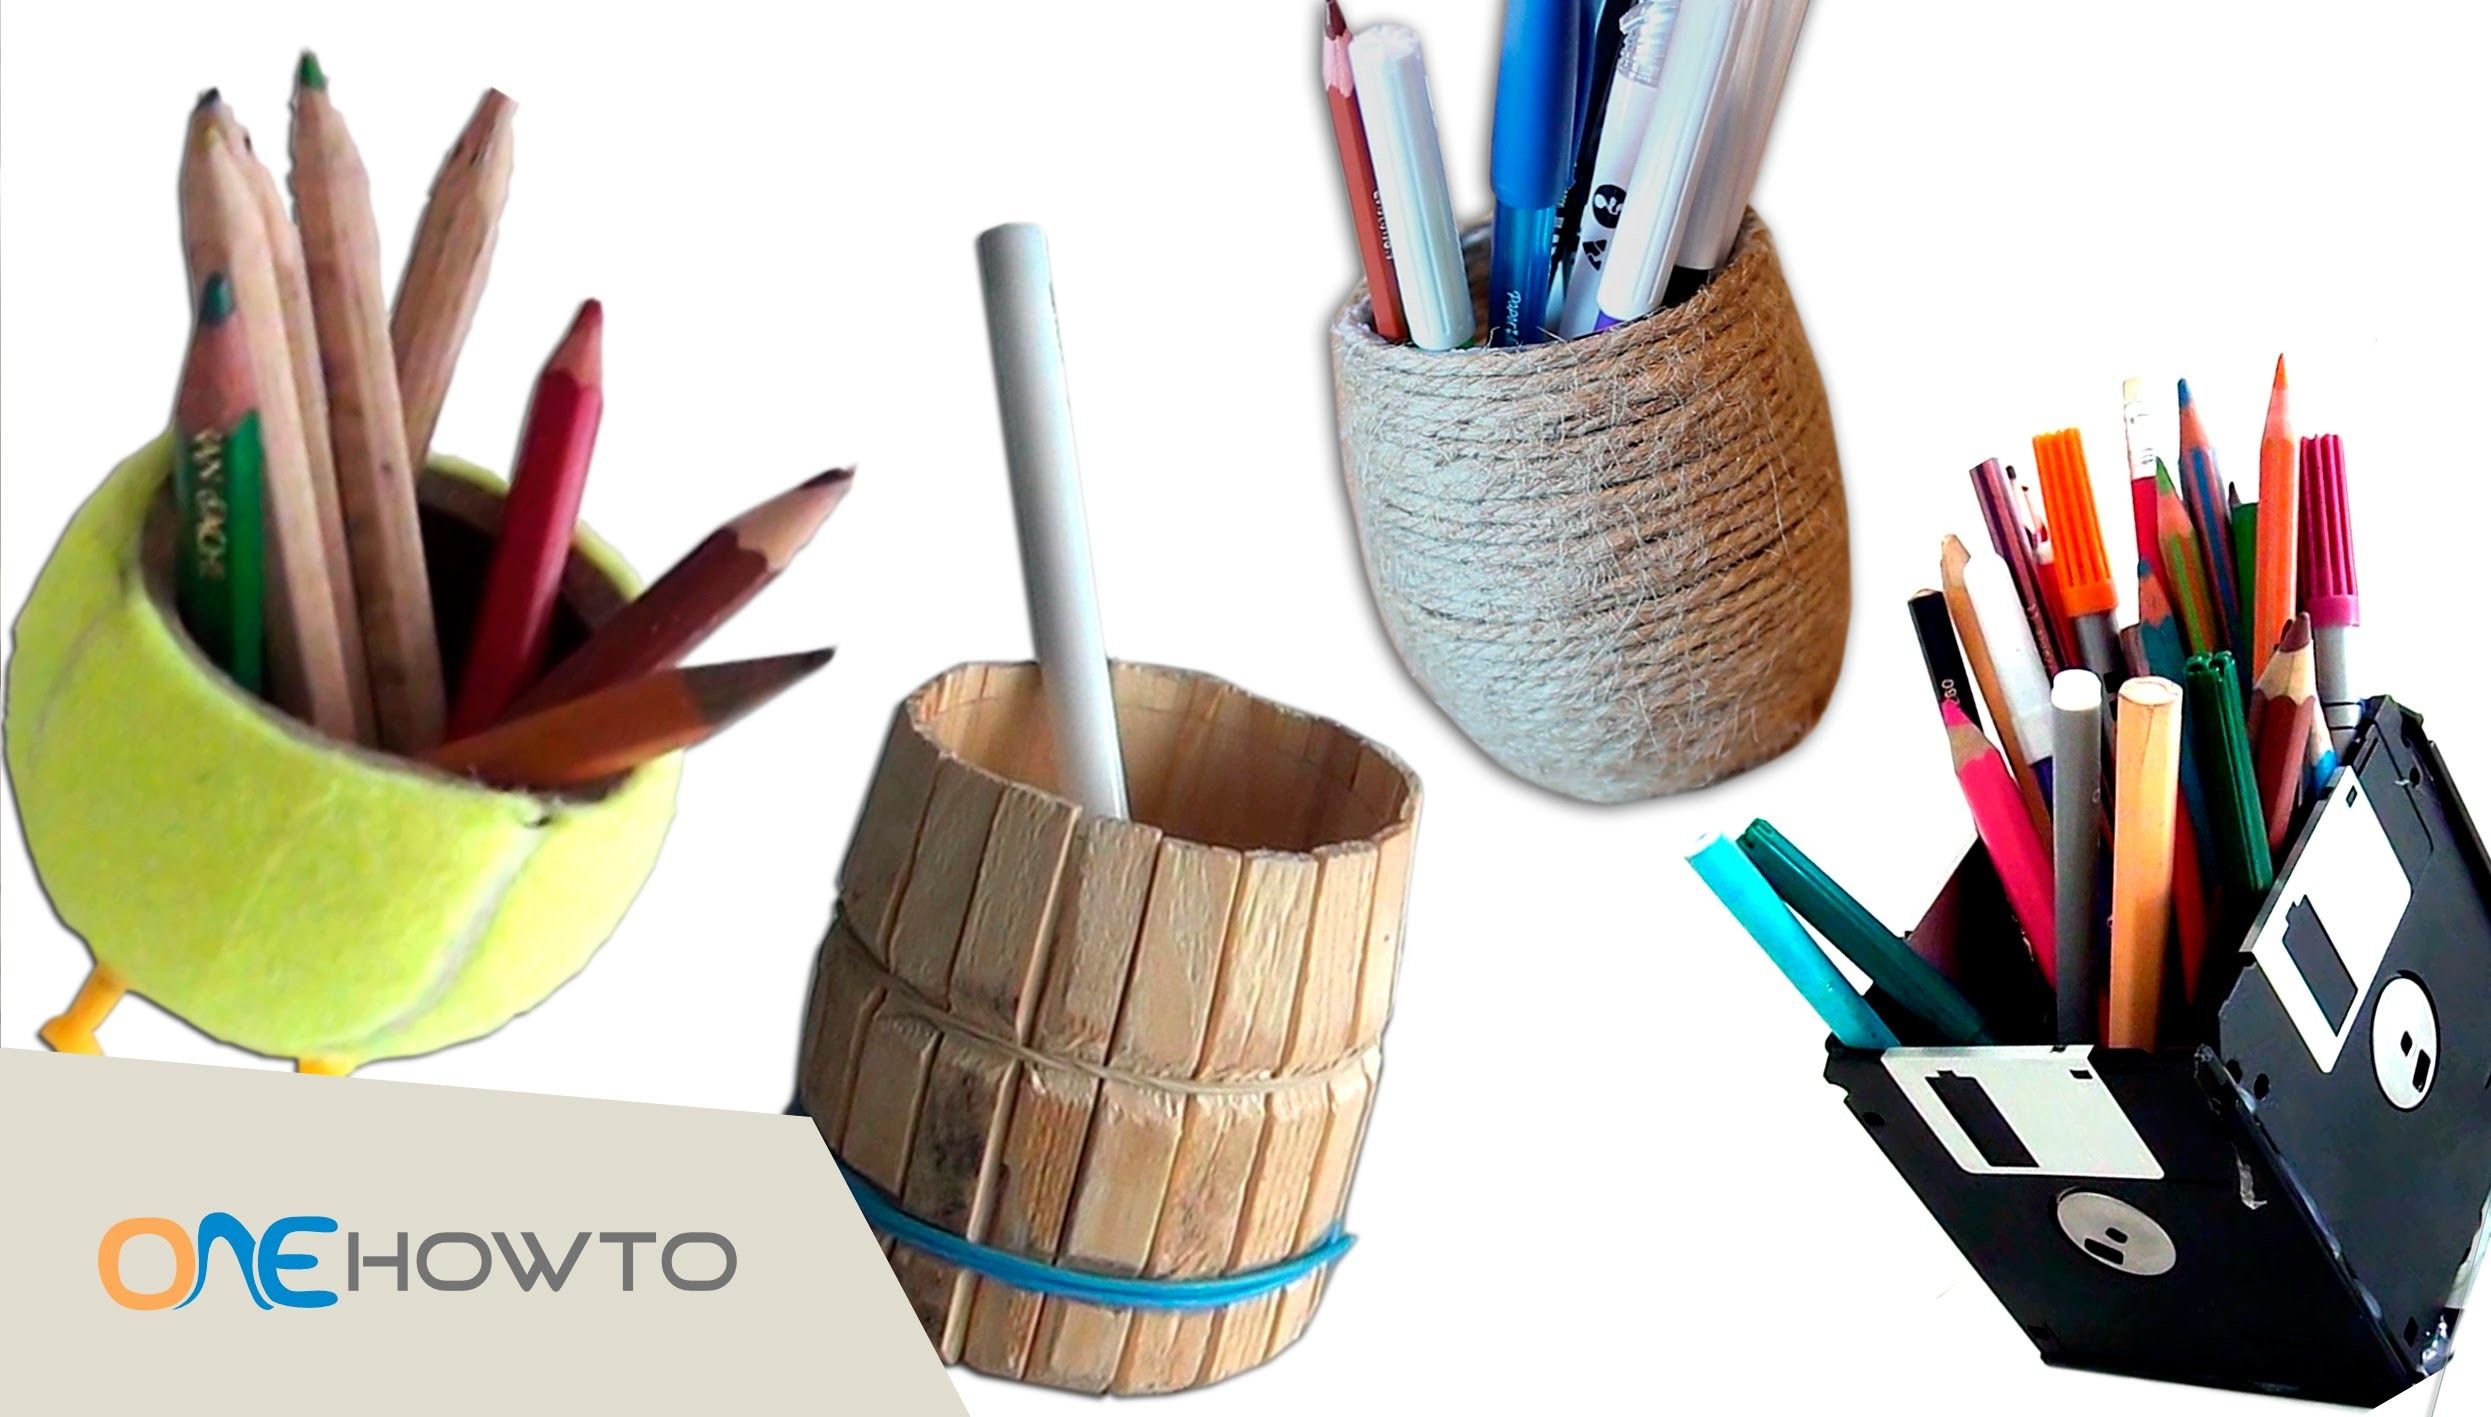 4 diy pencil holders crafts with waste material my for Out of waste material